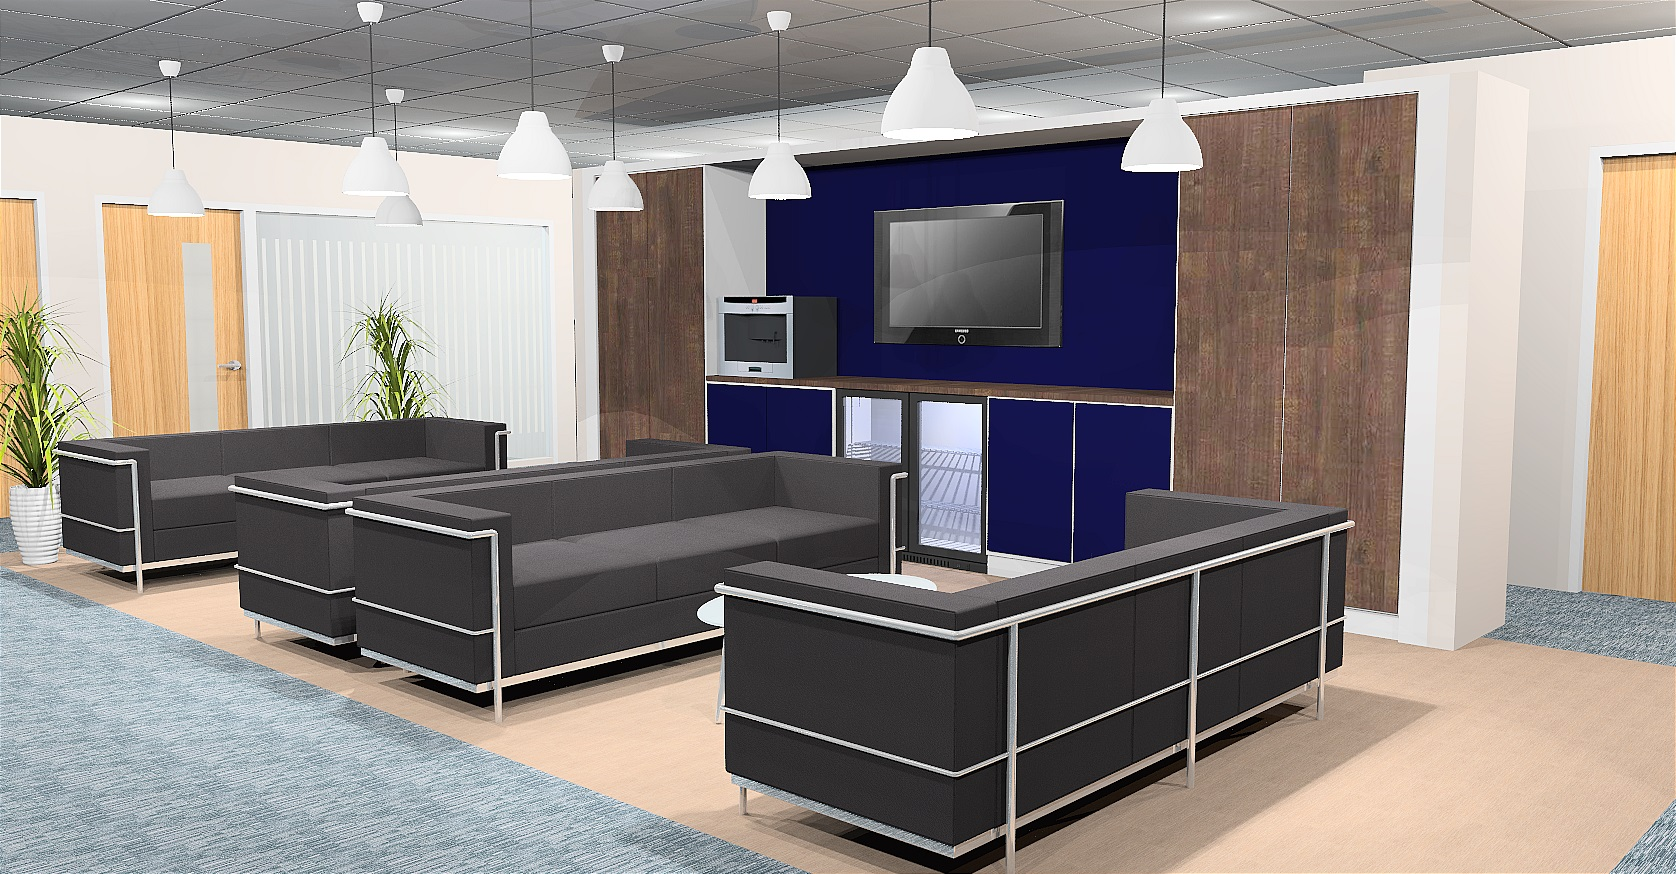 Continental Breakout Space Design